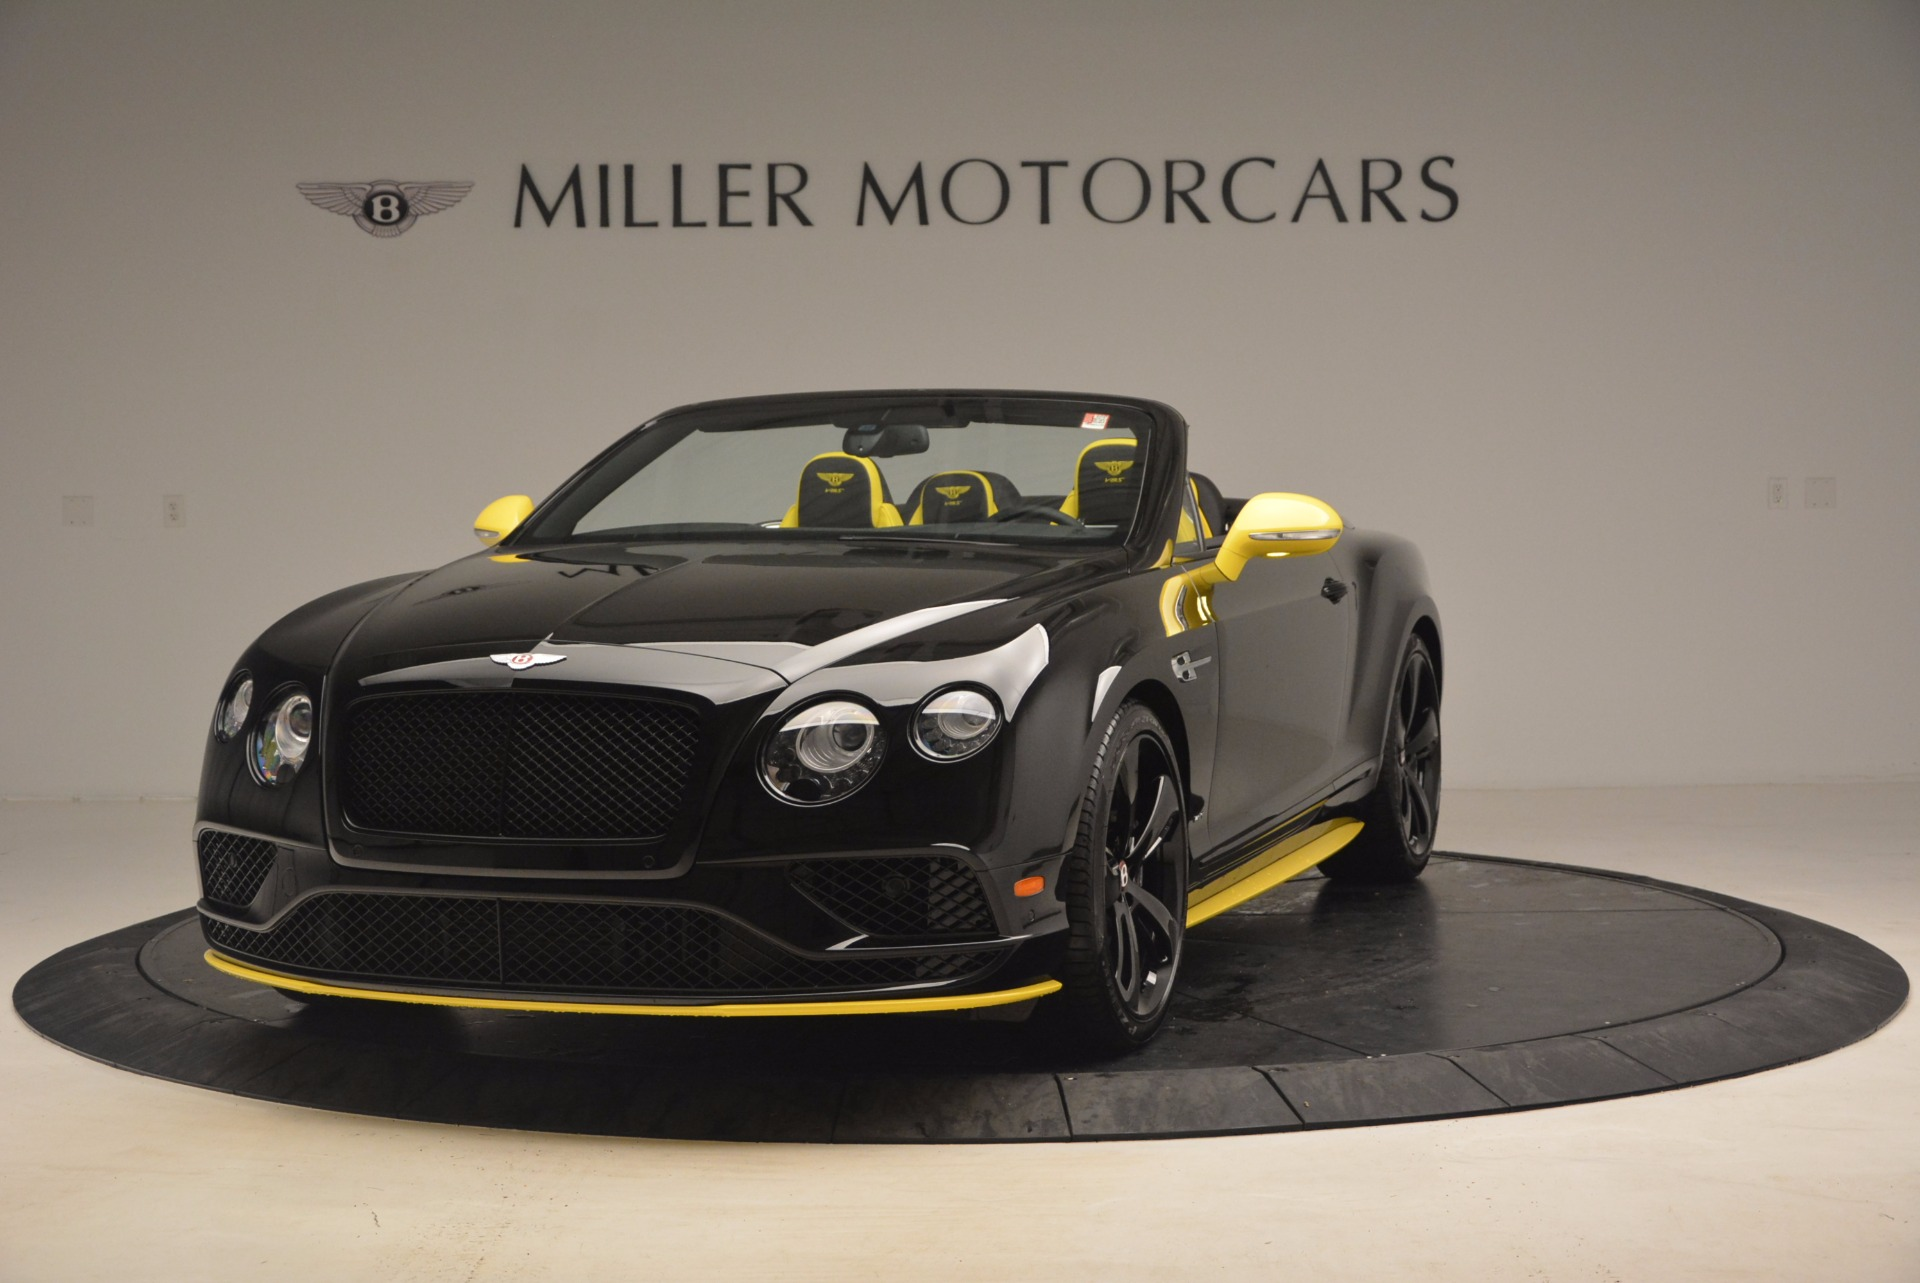 New 2017 Bentley Continental GT V8 S Black Edition for sale Sold at Bentley Greenwich in Greenwich CT 06830 1